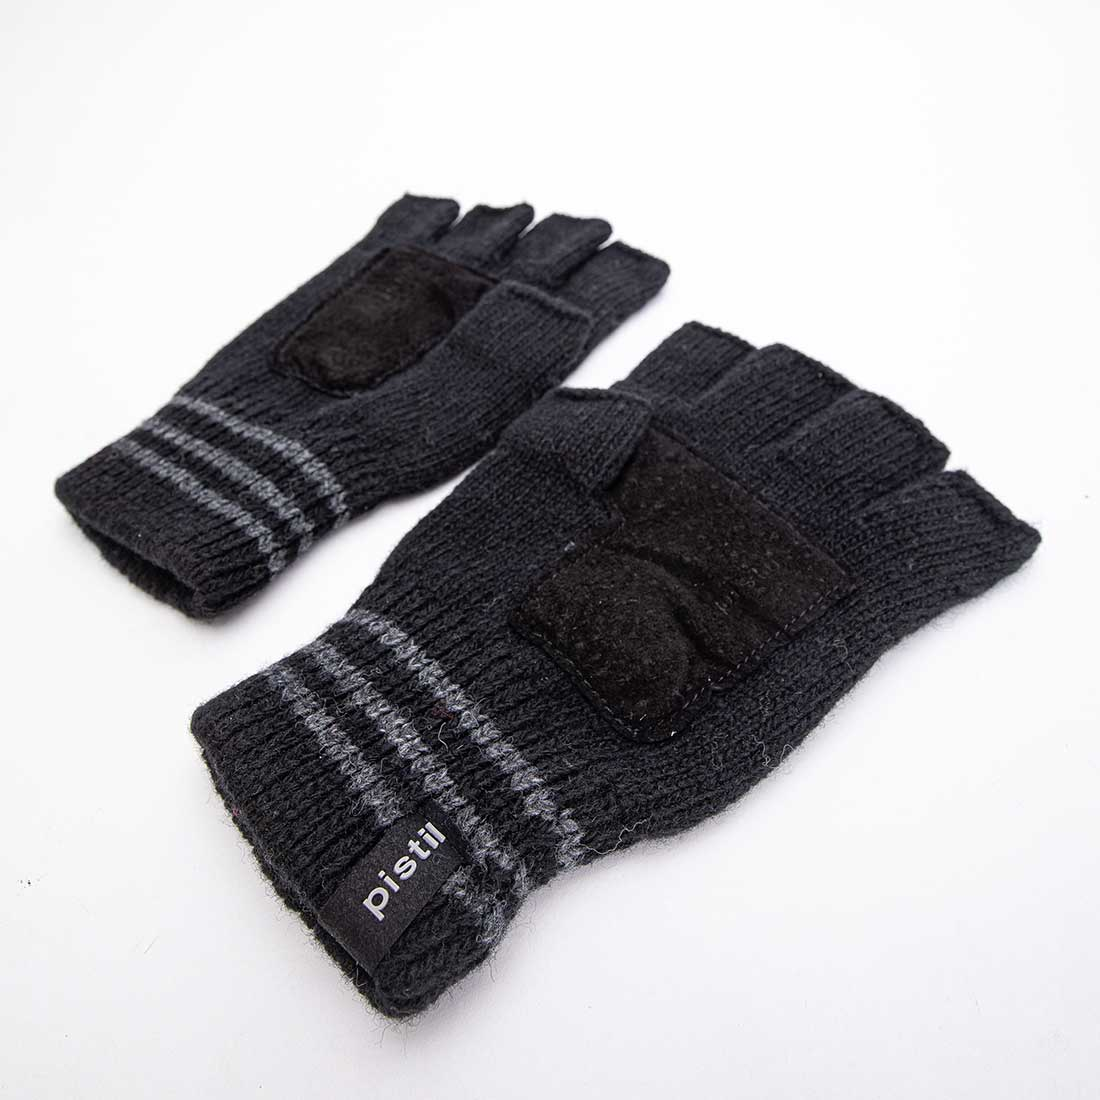 Hoyt Fingerless Glove